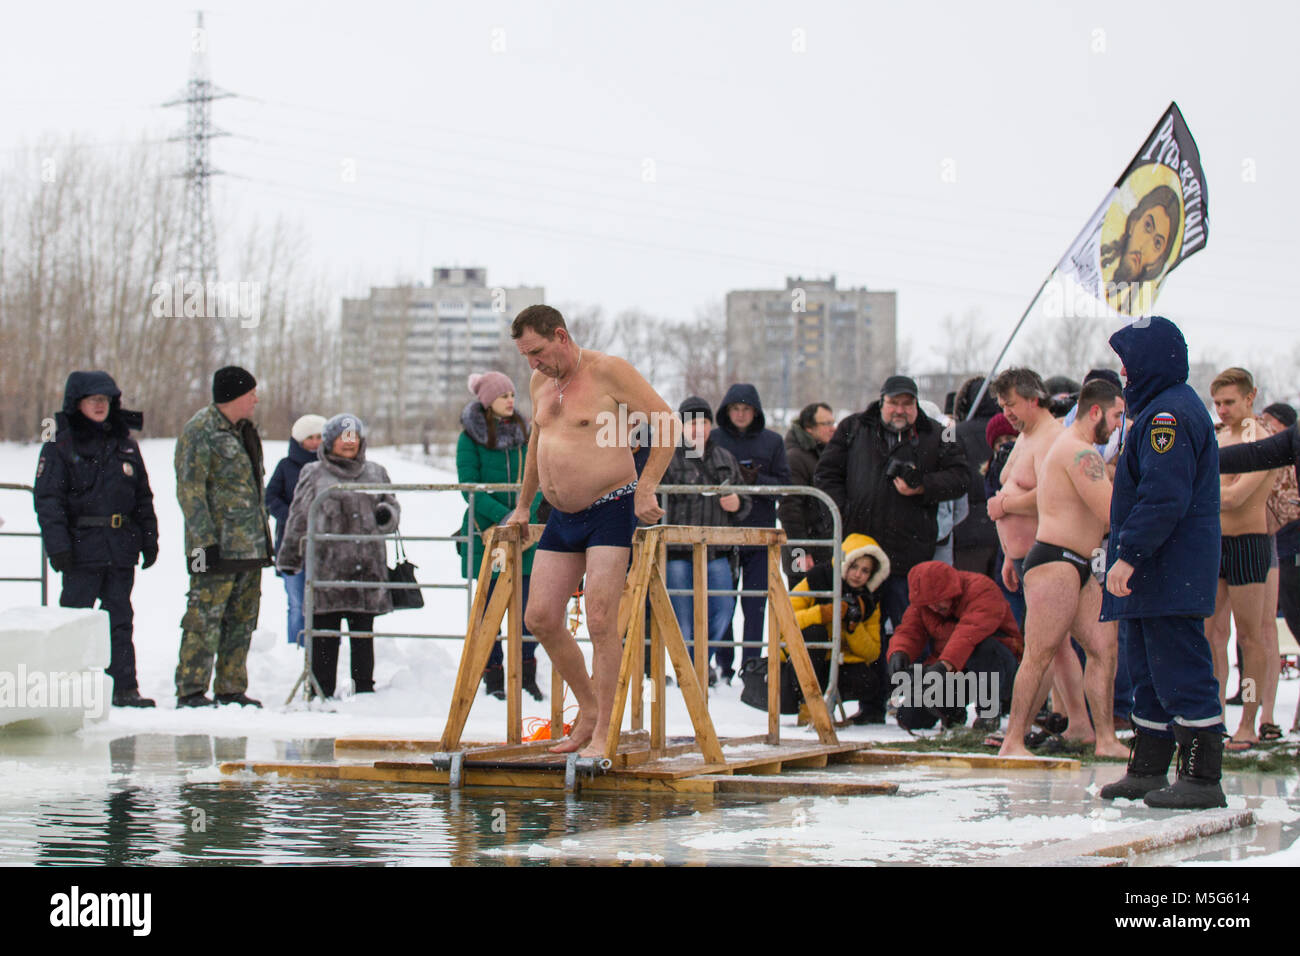 KAZAN, RUSSIA - JANUARY 19, 2017: Jesus Christ's baptism holiday on kazanka river. Traditional winter bathing - Stock Image